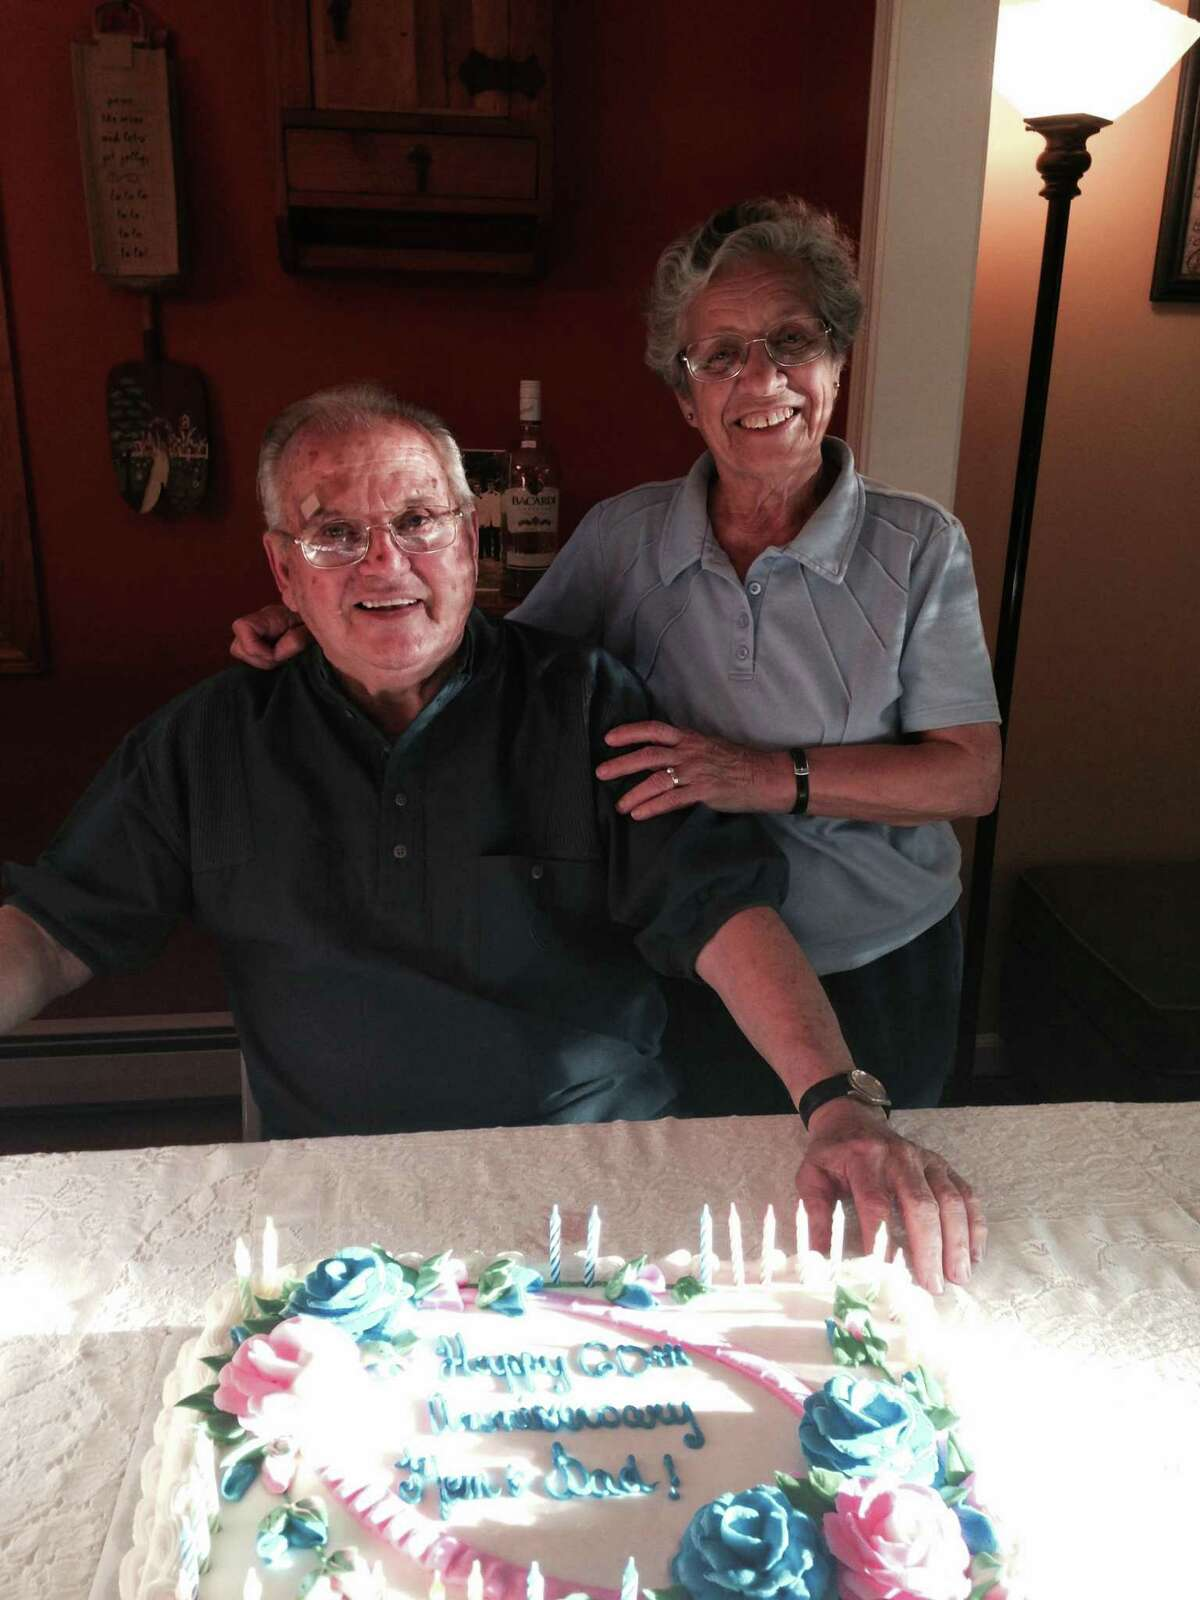 Frank and Vivian Lucherini of Stamford, Connecticut. Frank, former owner of Summer Street Dairy Queen in Stamford, died Jan. 1, 2021.